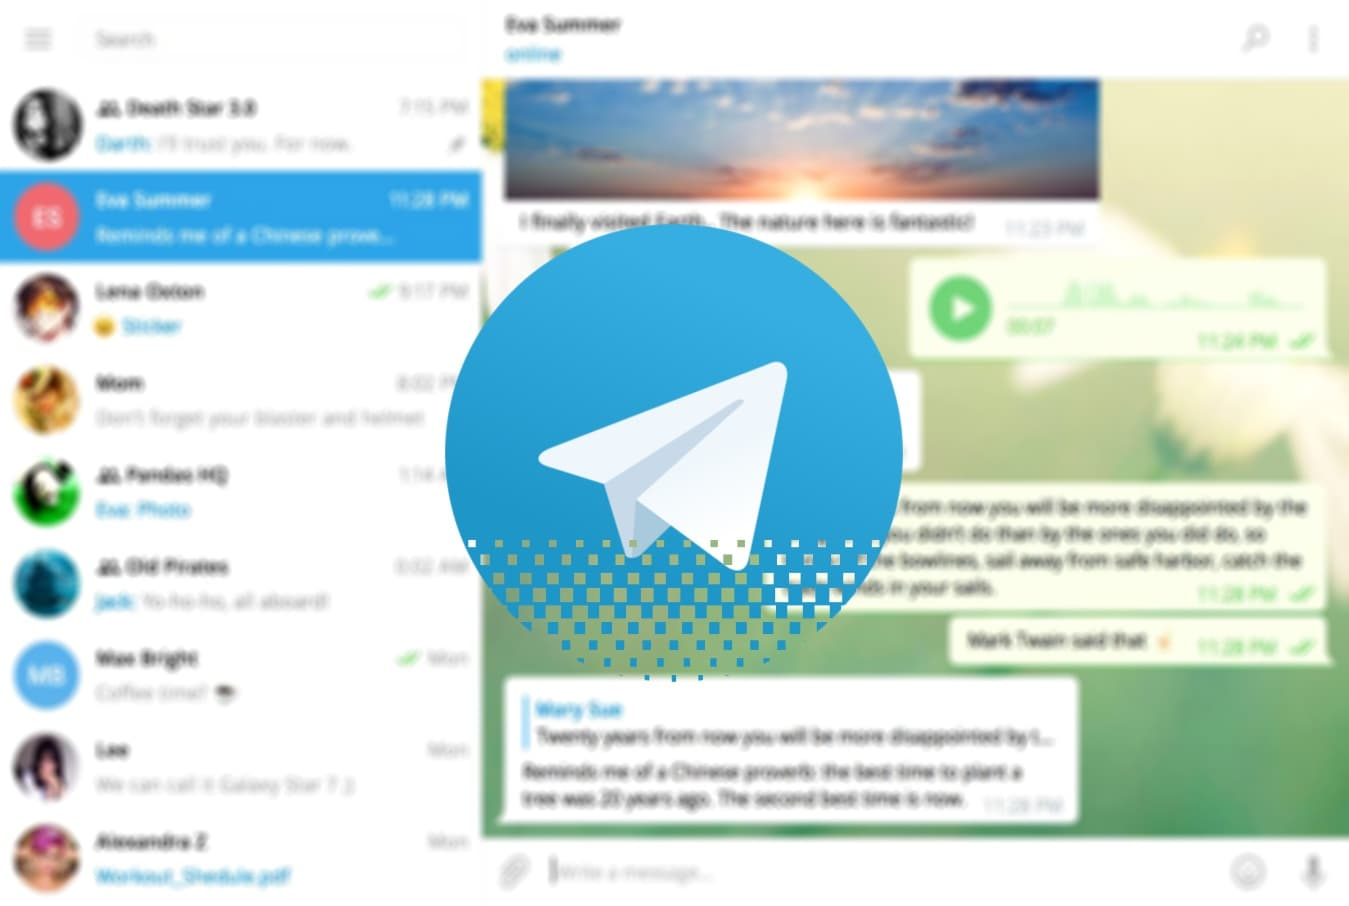 Telegram messaging service hit by massive DDoS attack